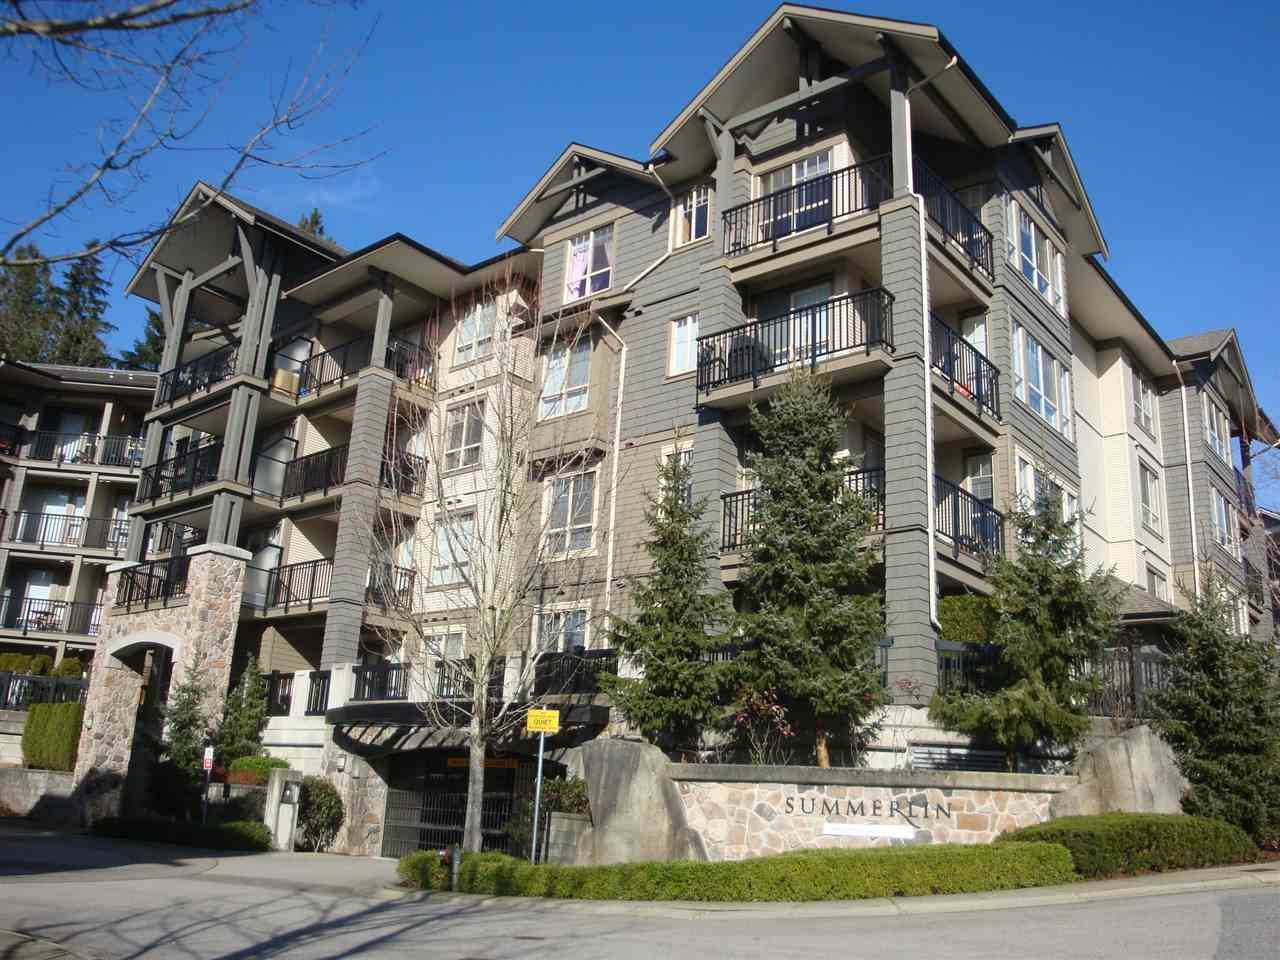 Main Photo: 402 2969 WHISPER Way in Coquitlam: Westwood Plateau Condo for sale : MLS®# R2037261